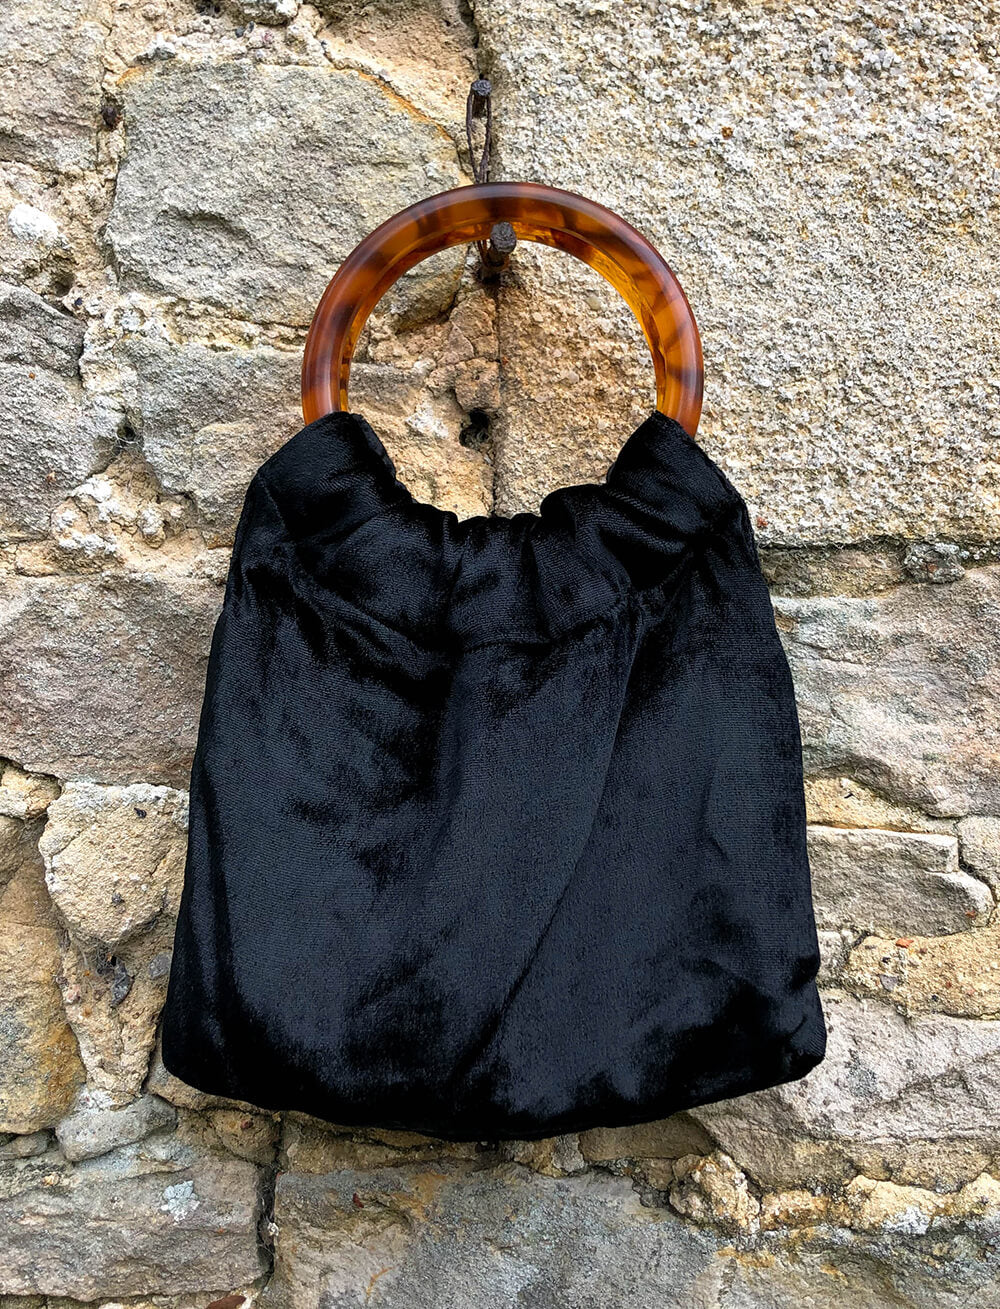 Lio Mara Black Silk Velvet Mini Bag With Tortoiseshell Handles